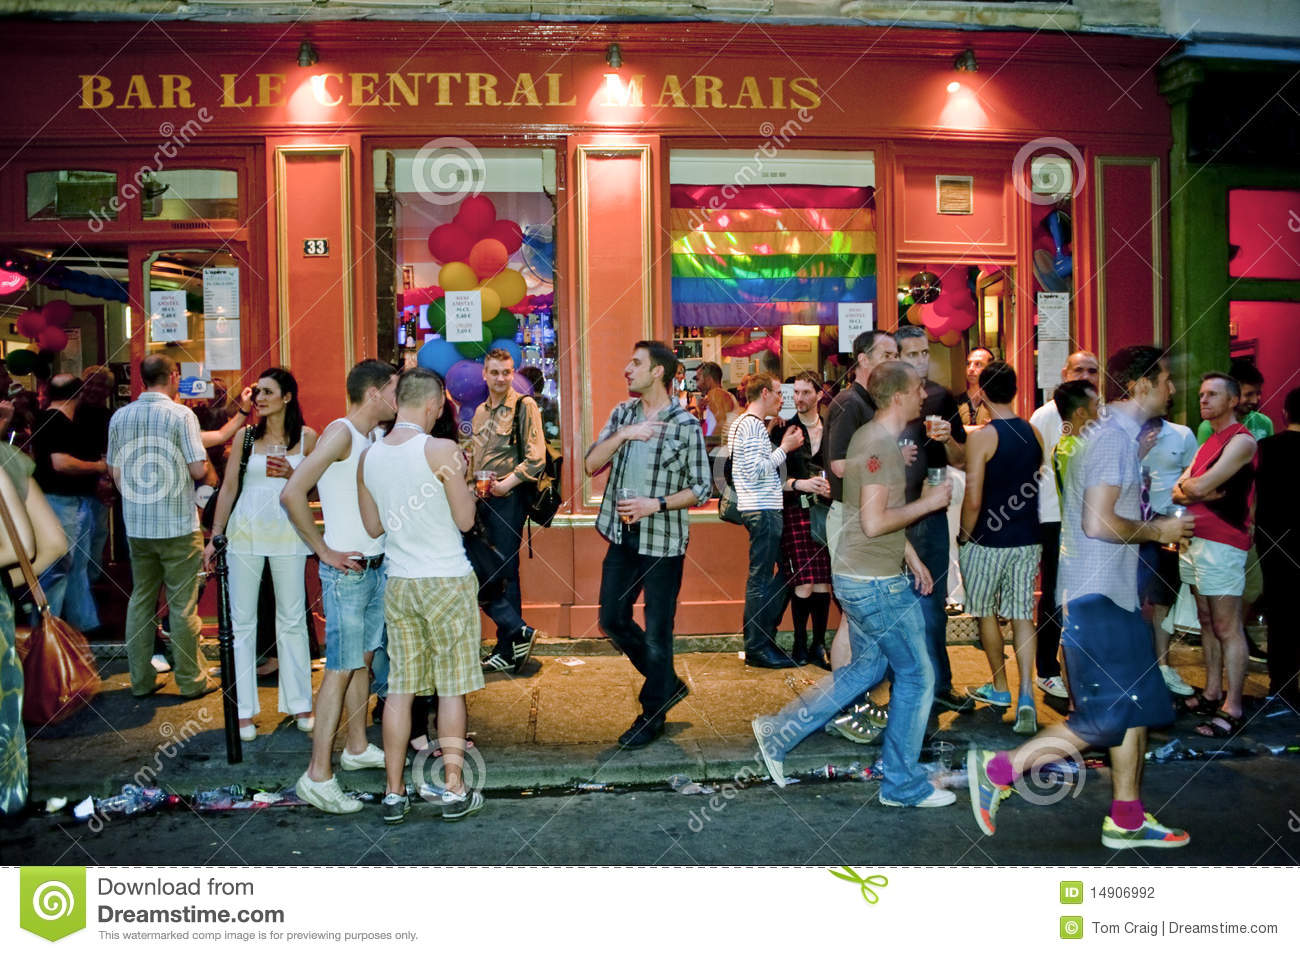 Paris Gay Map 2018 - gay bars, clubs,